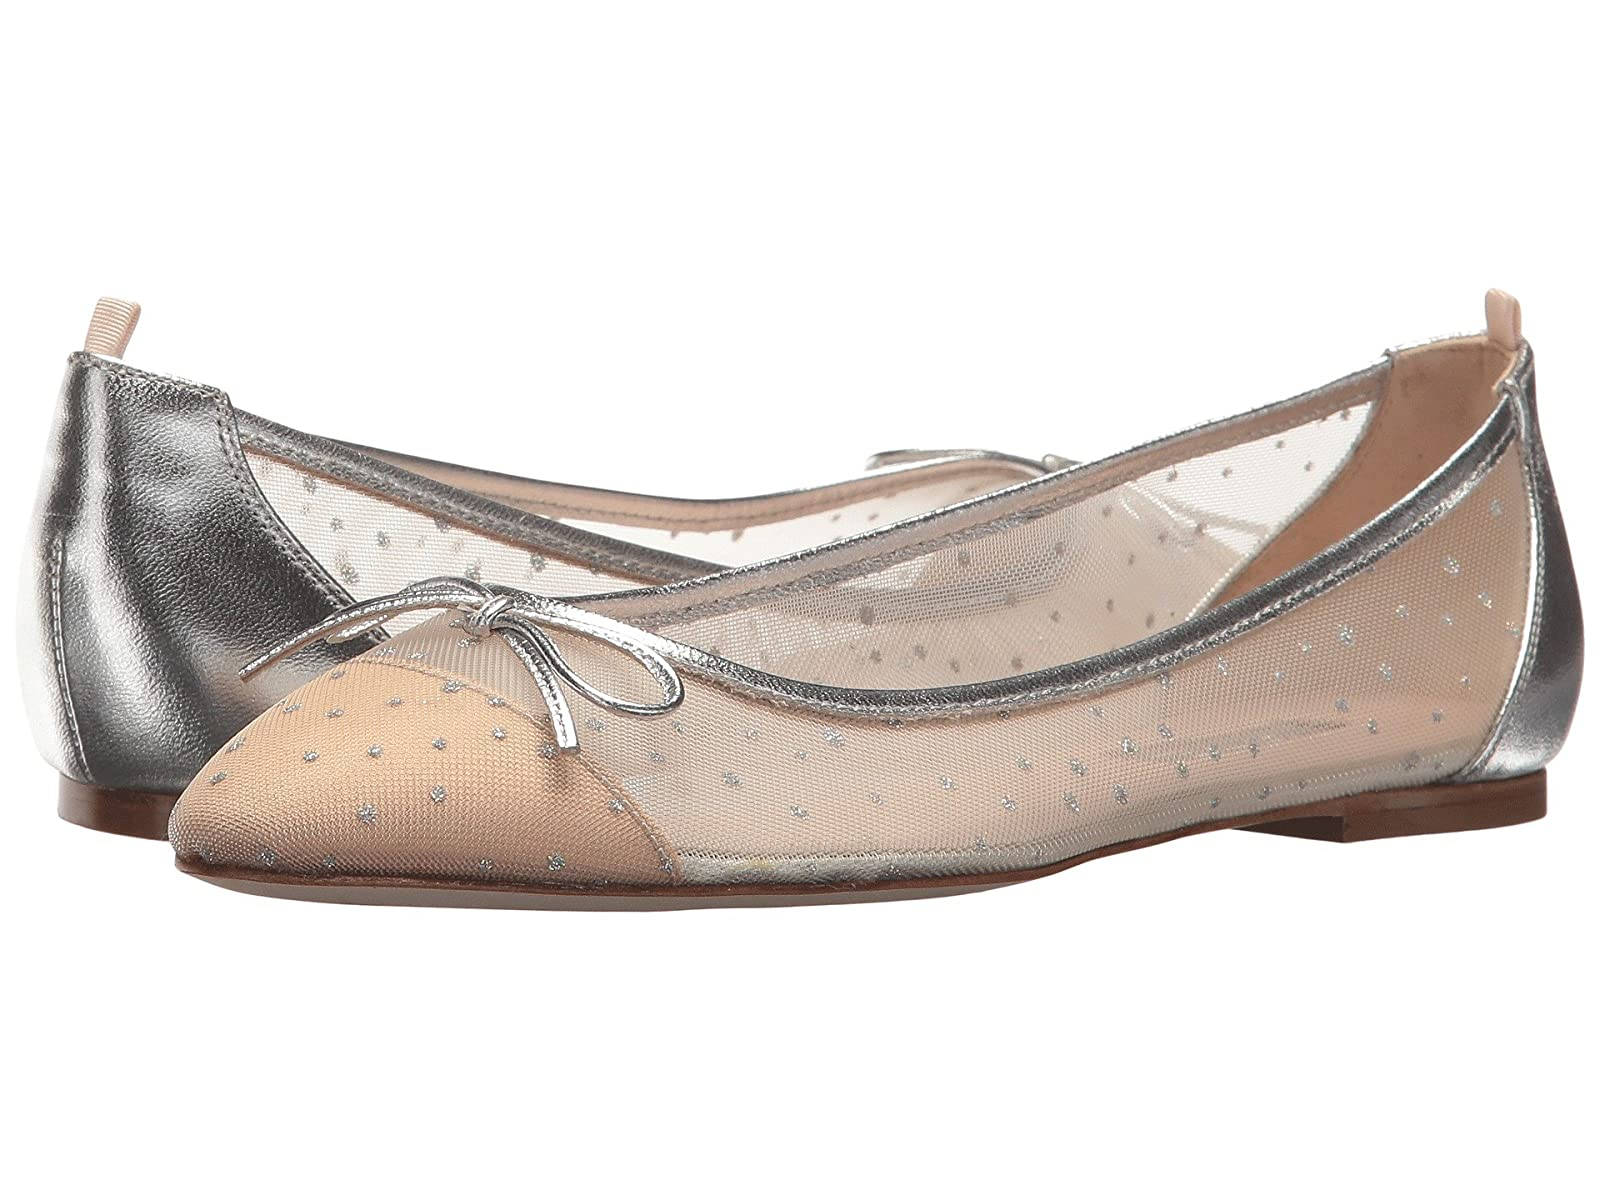 SJP by Sarah Jessica Parker First DanceCheap and distinctive eye-catching shoes